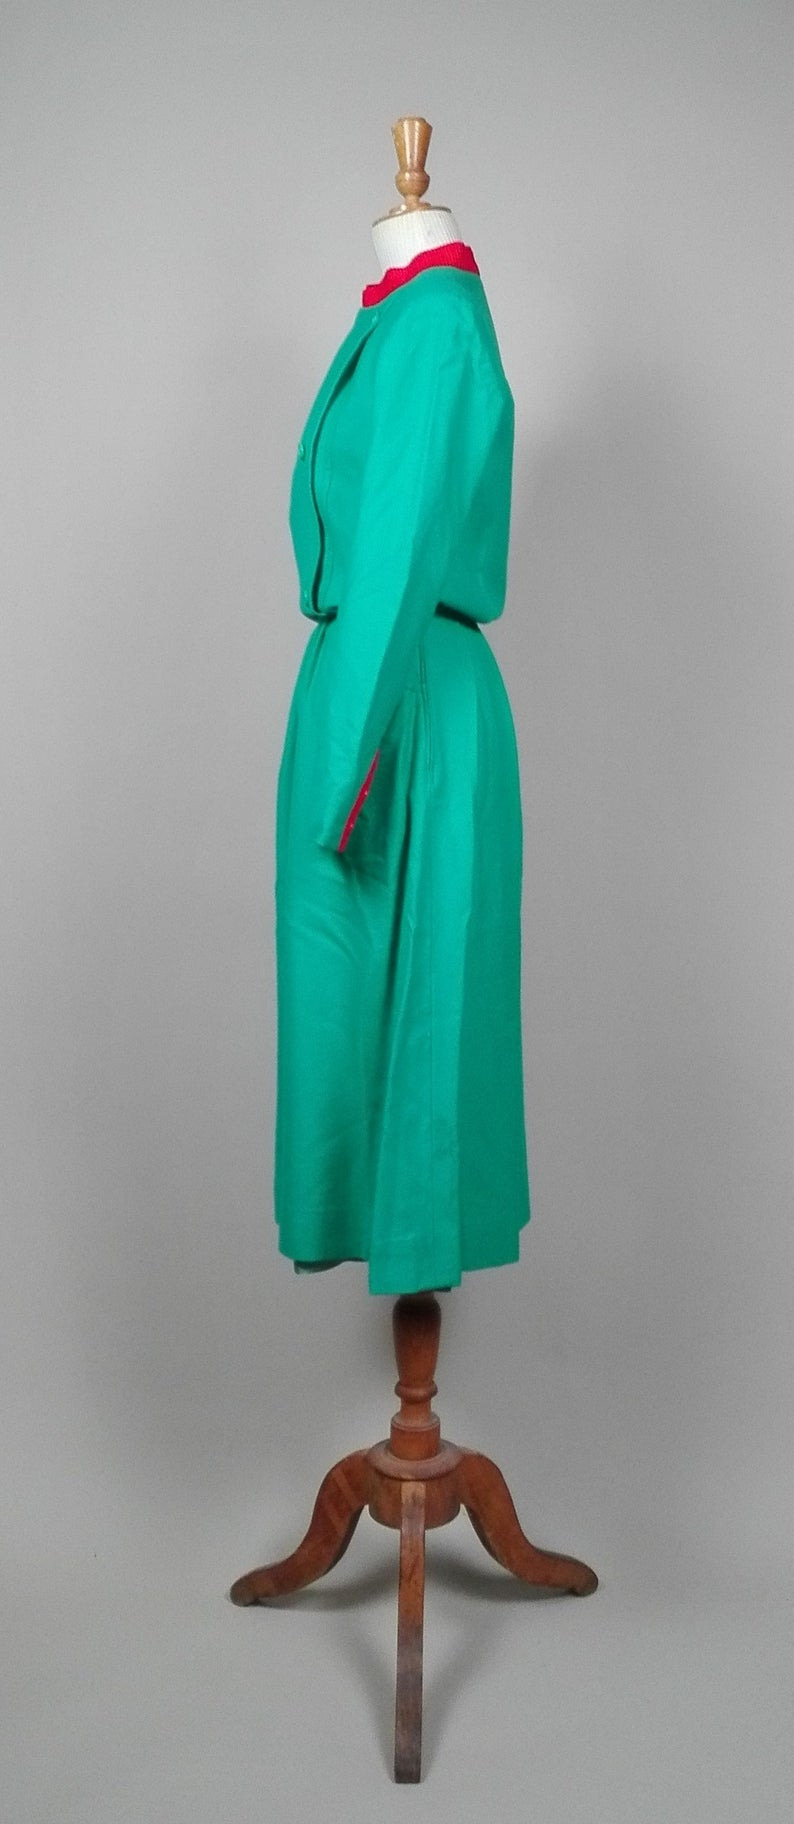 Christian Dior Boutique Vintage Kleid 1970 1980 Wolle  Etsy